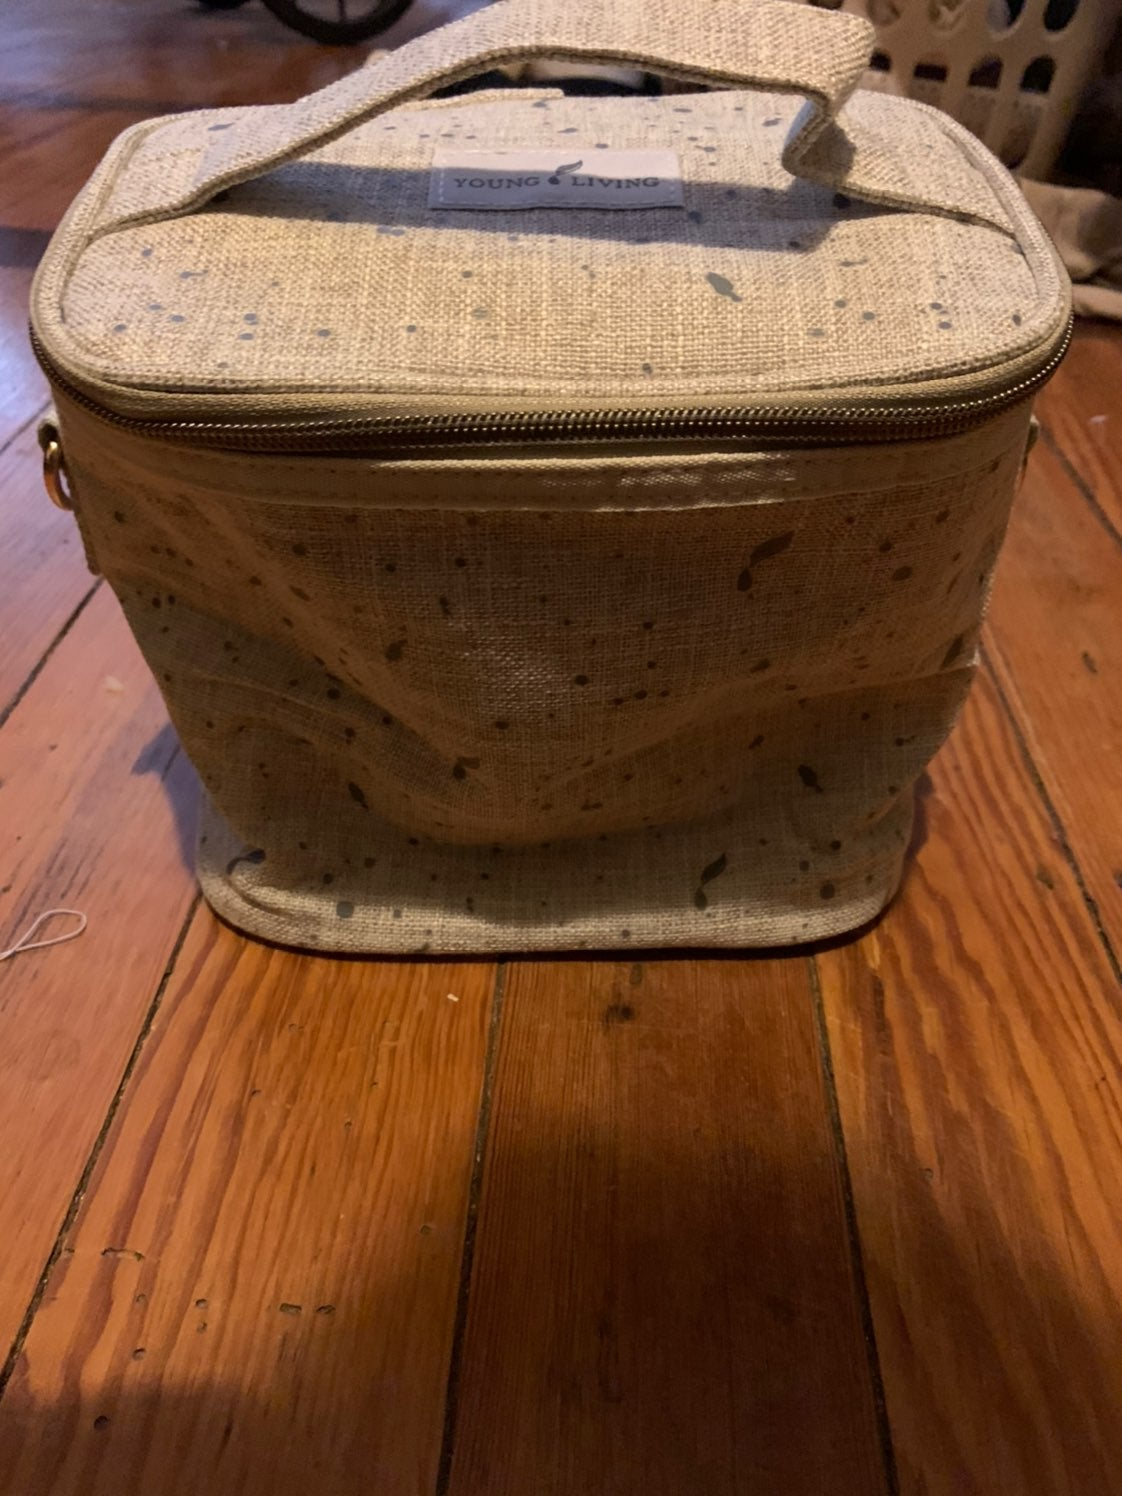 Young Living Mini Cooler/Lunchbox NEW